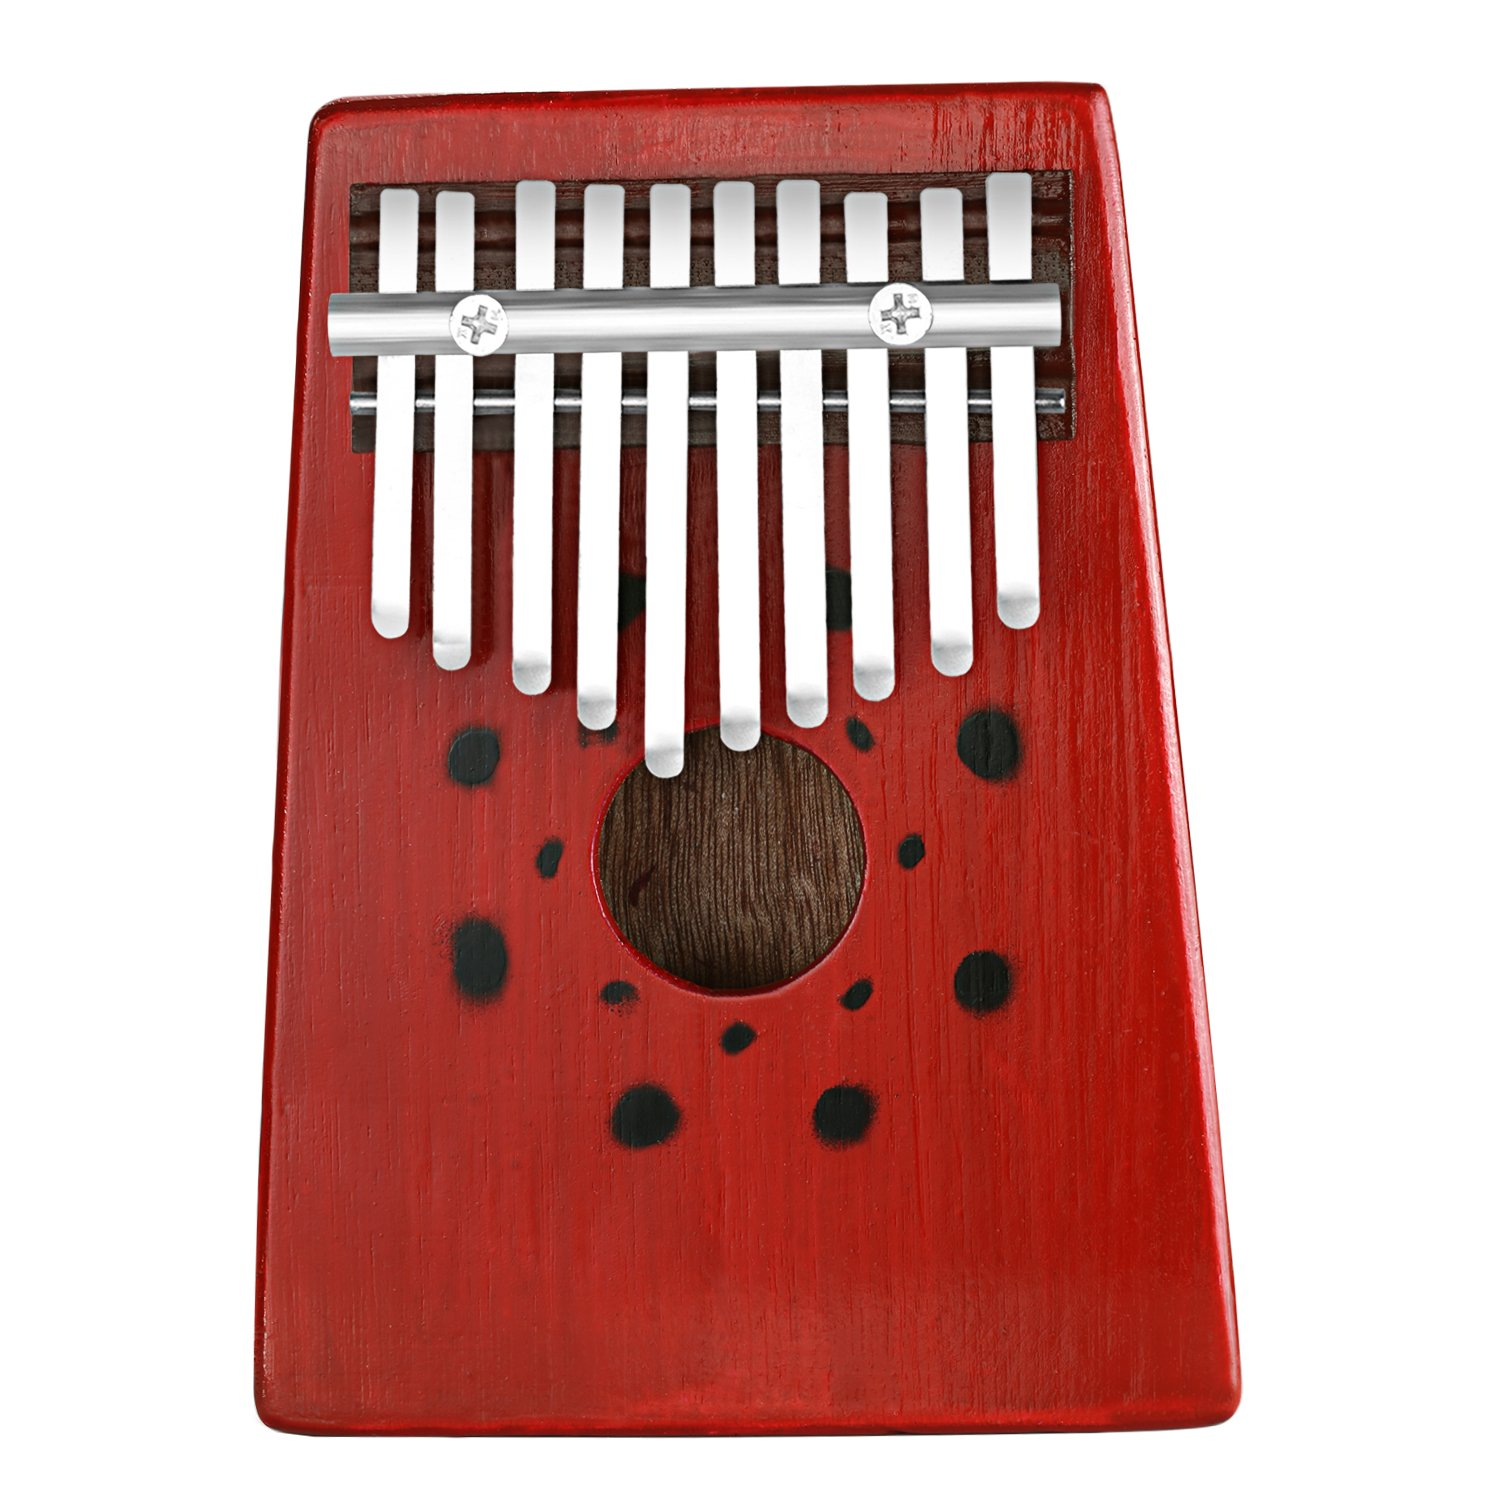 Neewer 10 Keys Birch Finger Thumb Piano Mbira, Portable 17x12.8x2.9 centimeters/6.7x 5.0x1.1 inches, Education Toy Musical Instrument for Music Lover (Red) 40089020